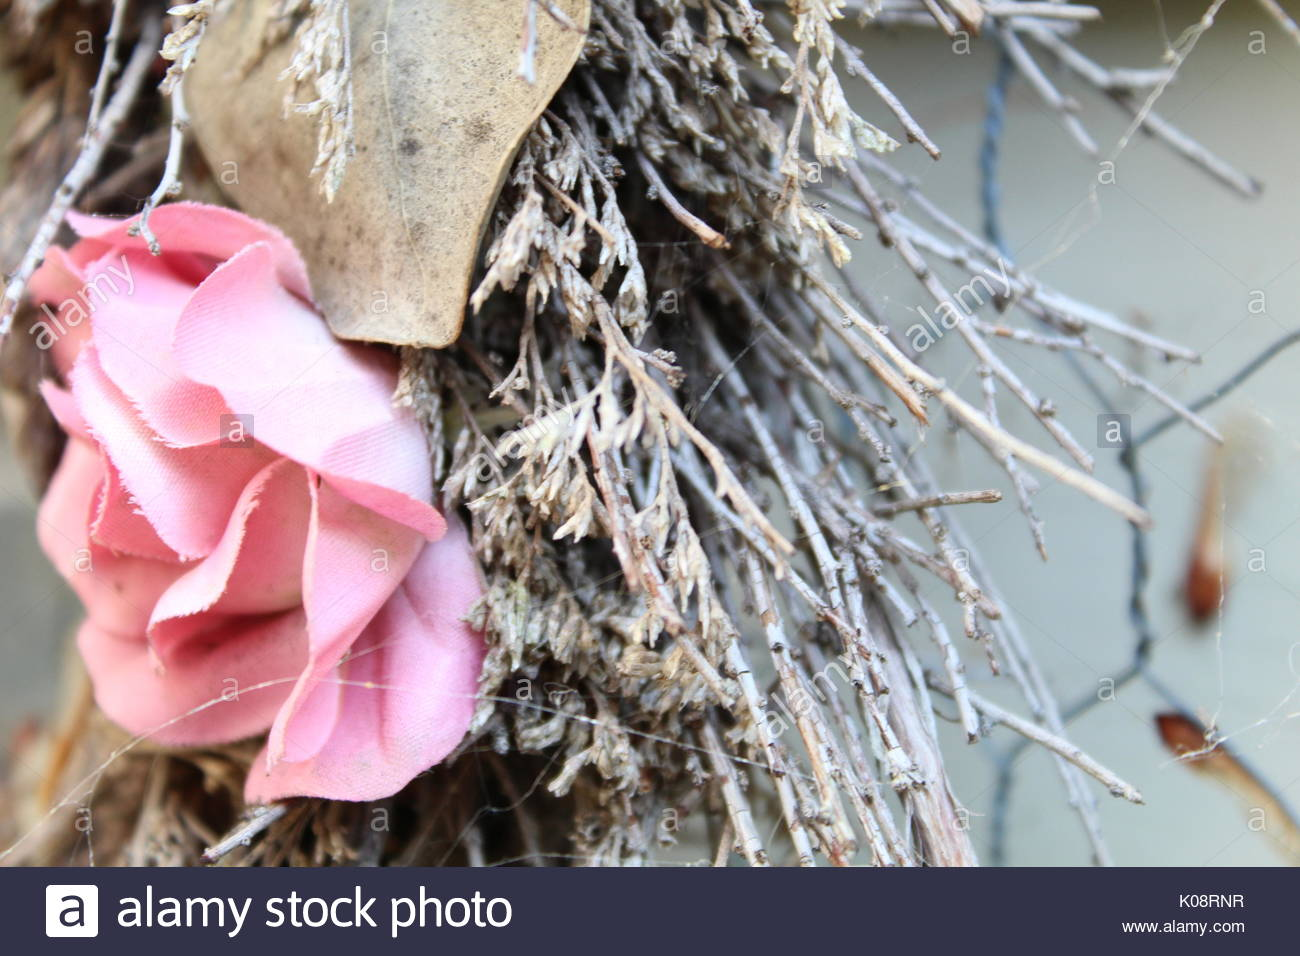 Old Country Wreath - Stock Image